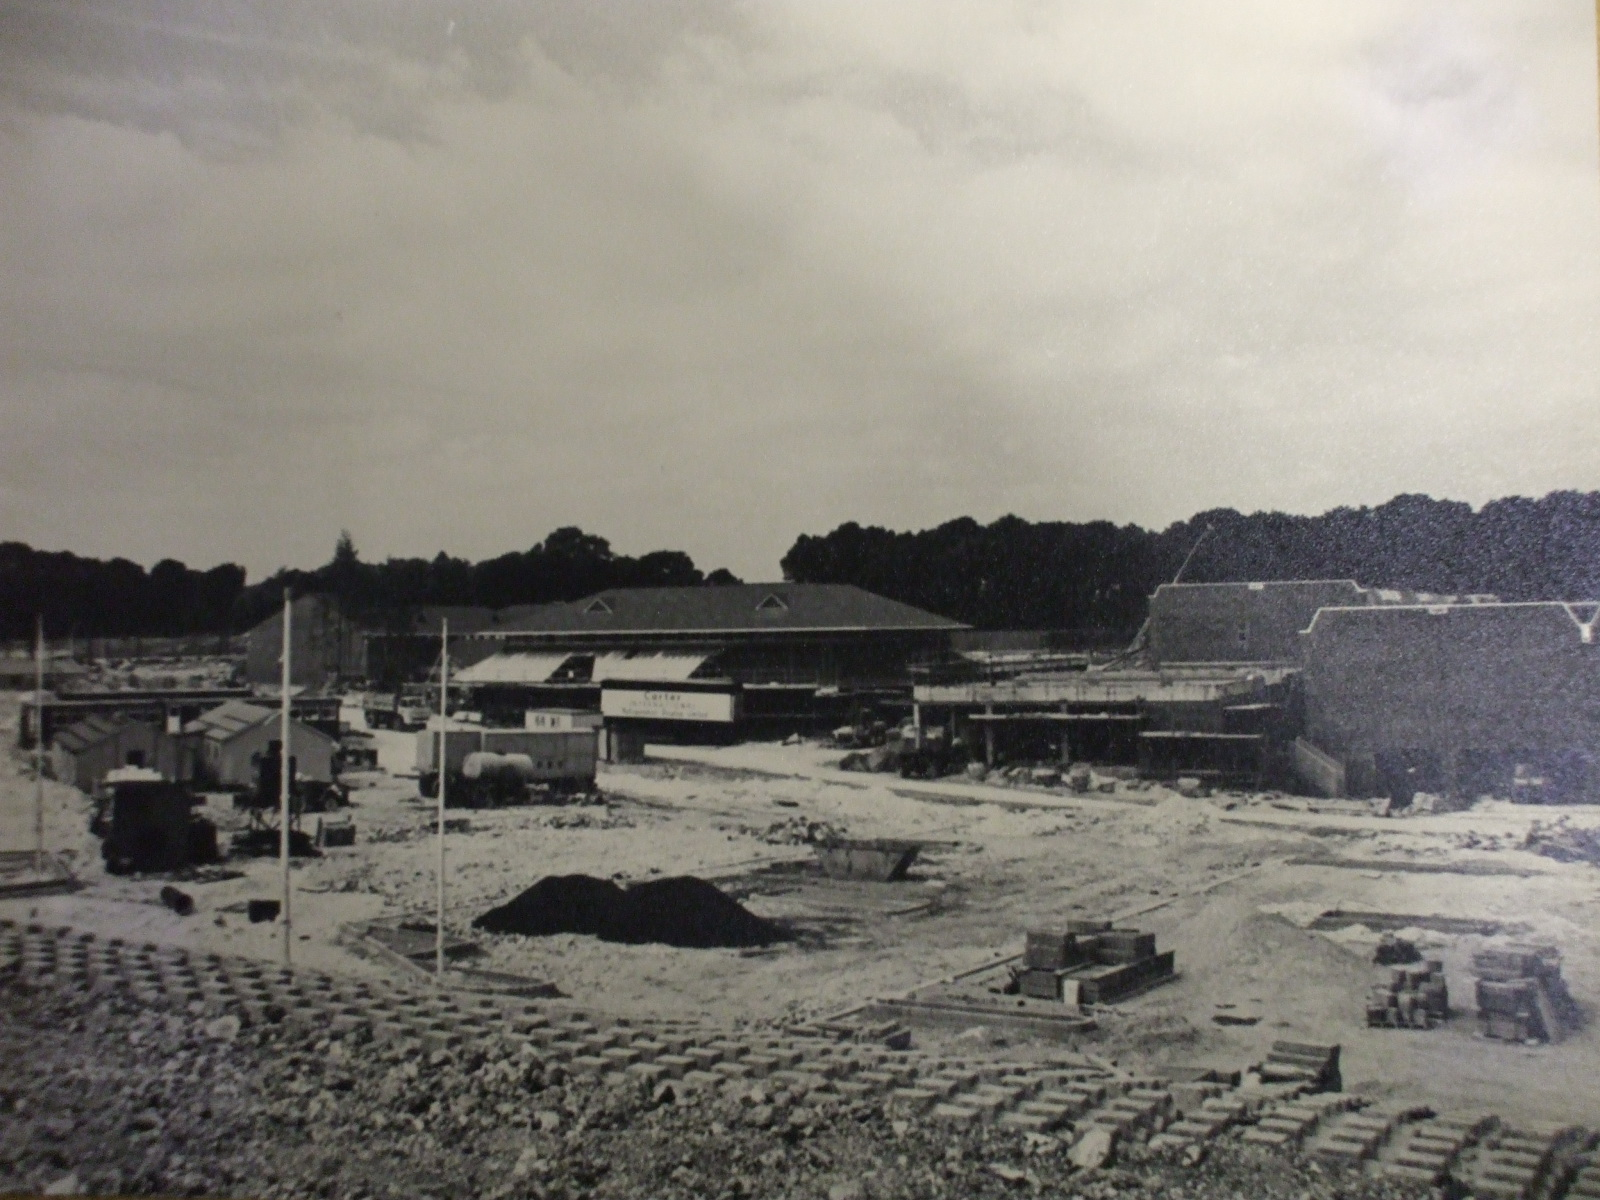 Photos of Savacentre Hempstead Valley Shopping Centre 1978:Looking towards Hempstead Valley from Sharsted Way